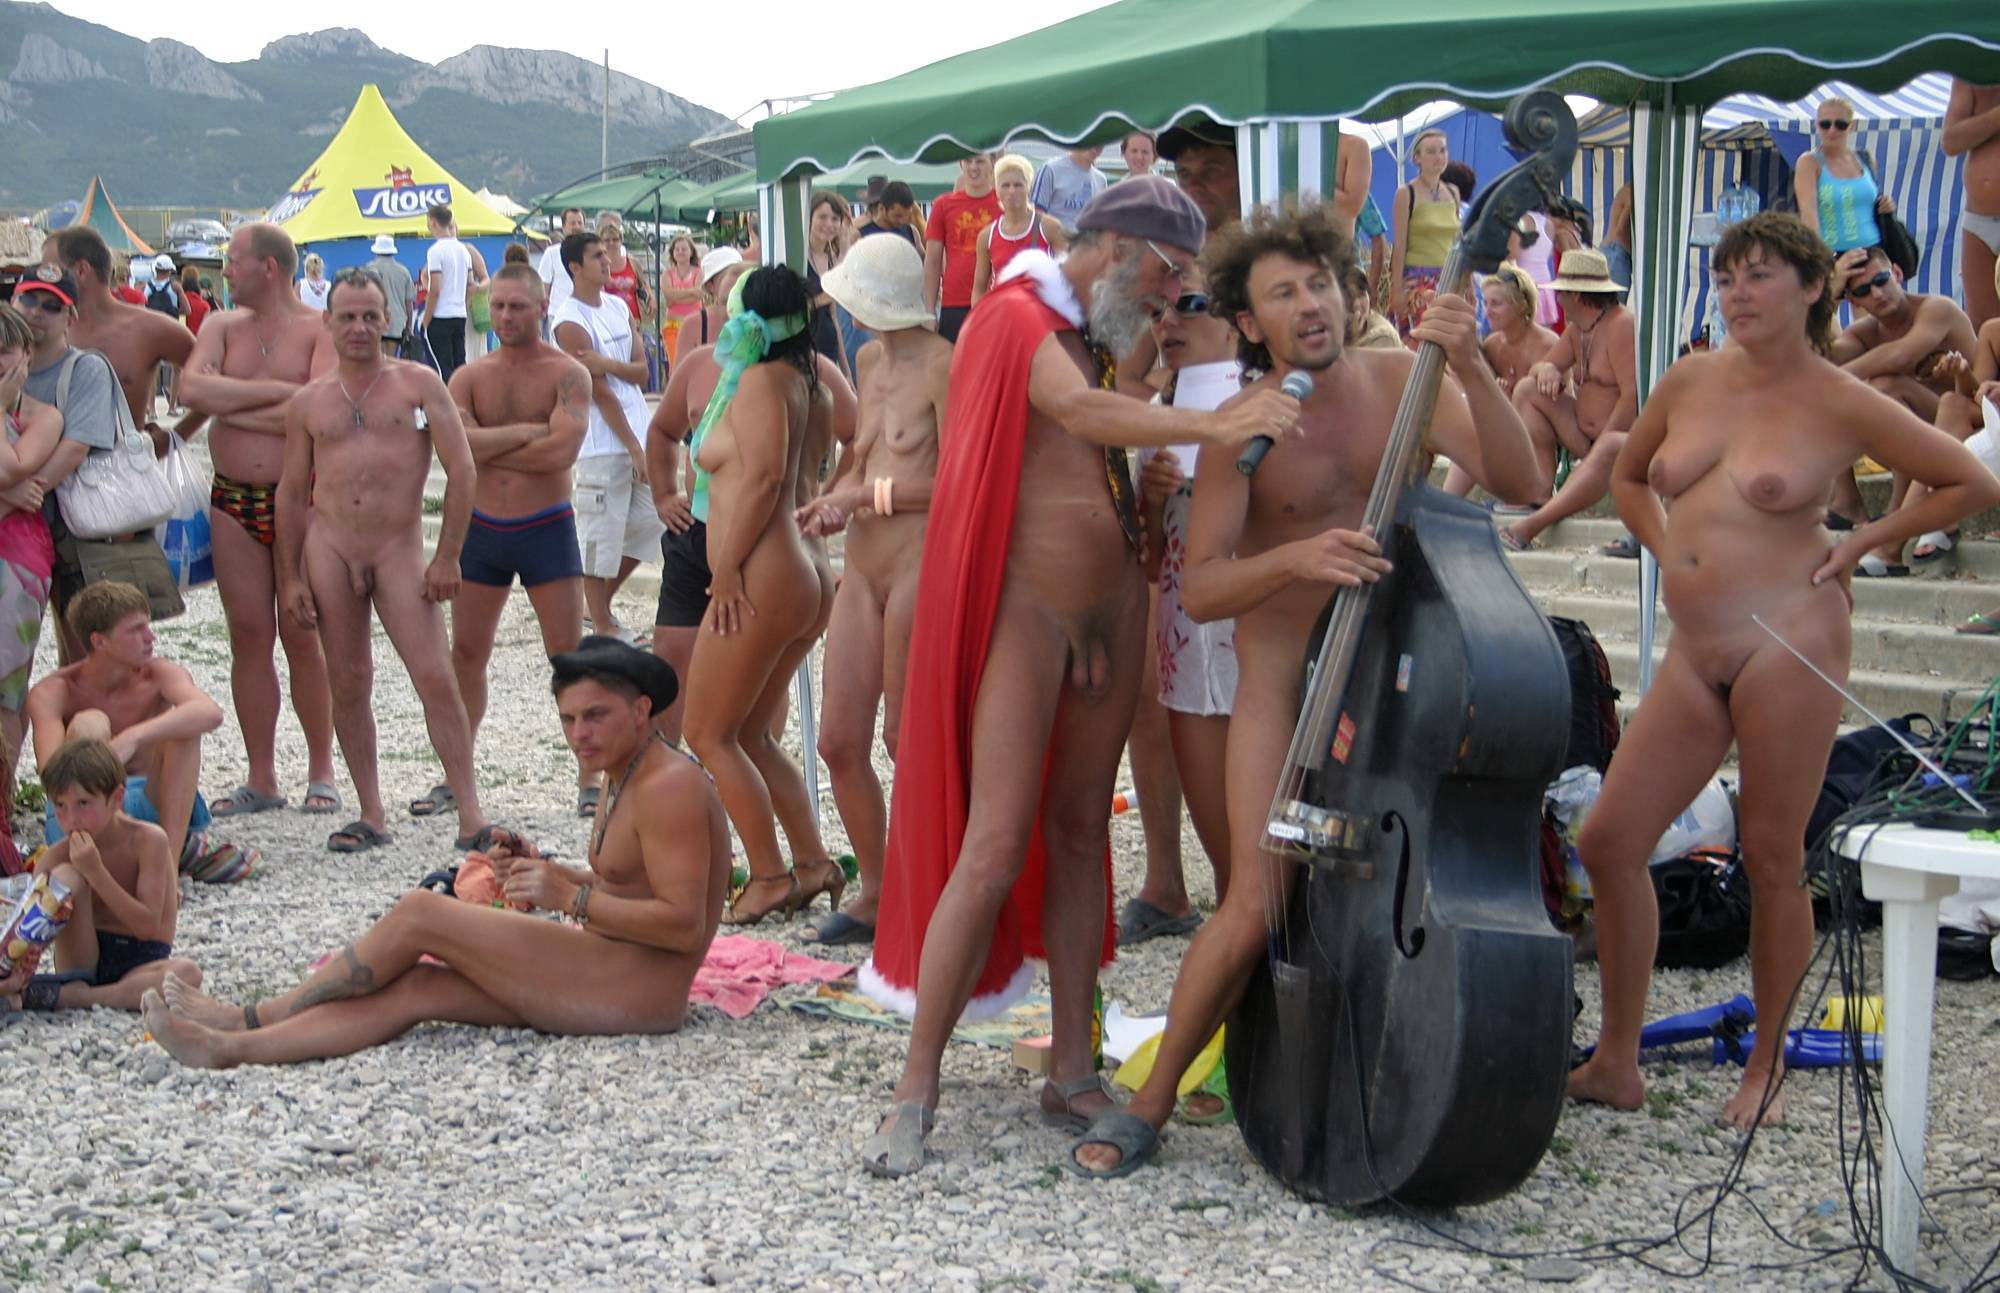 Pure Nudism Images Large Family Sun Party - 1